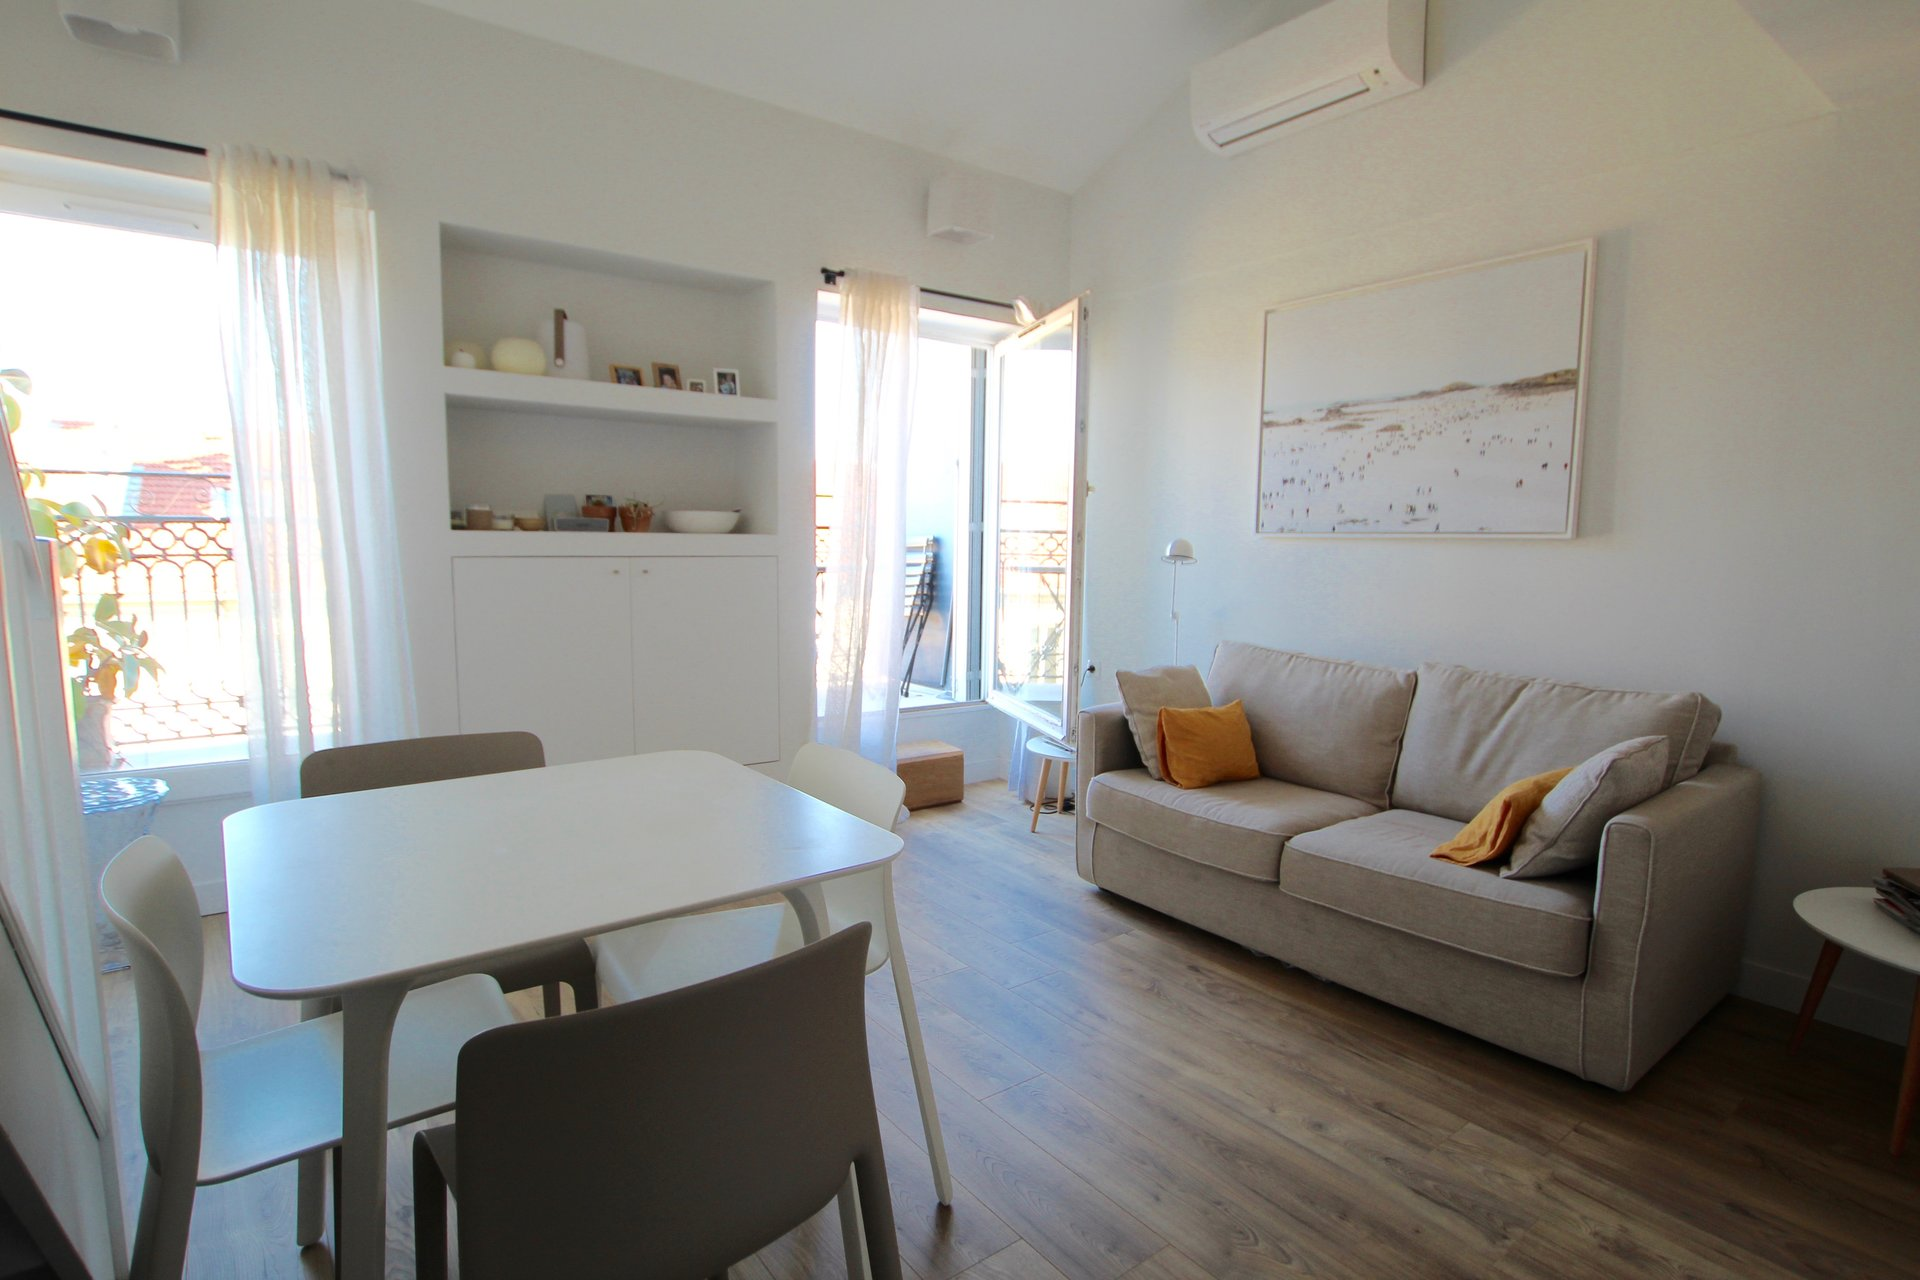 NICE CENTER - 1 bedroom - Top Floor - Balcony